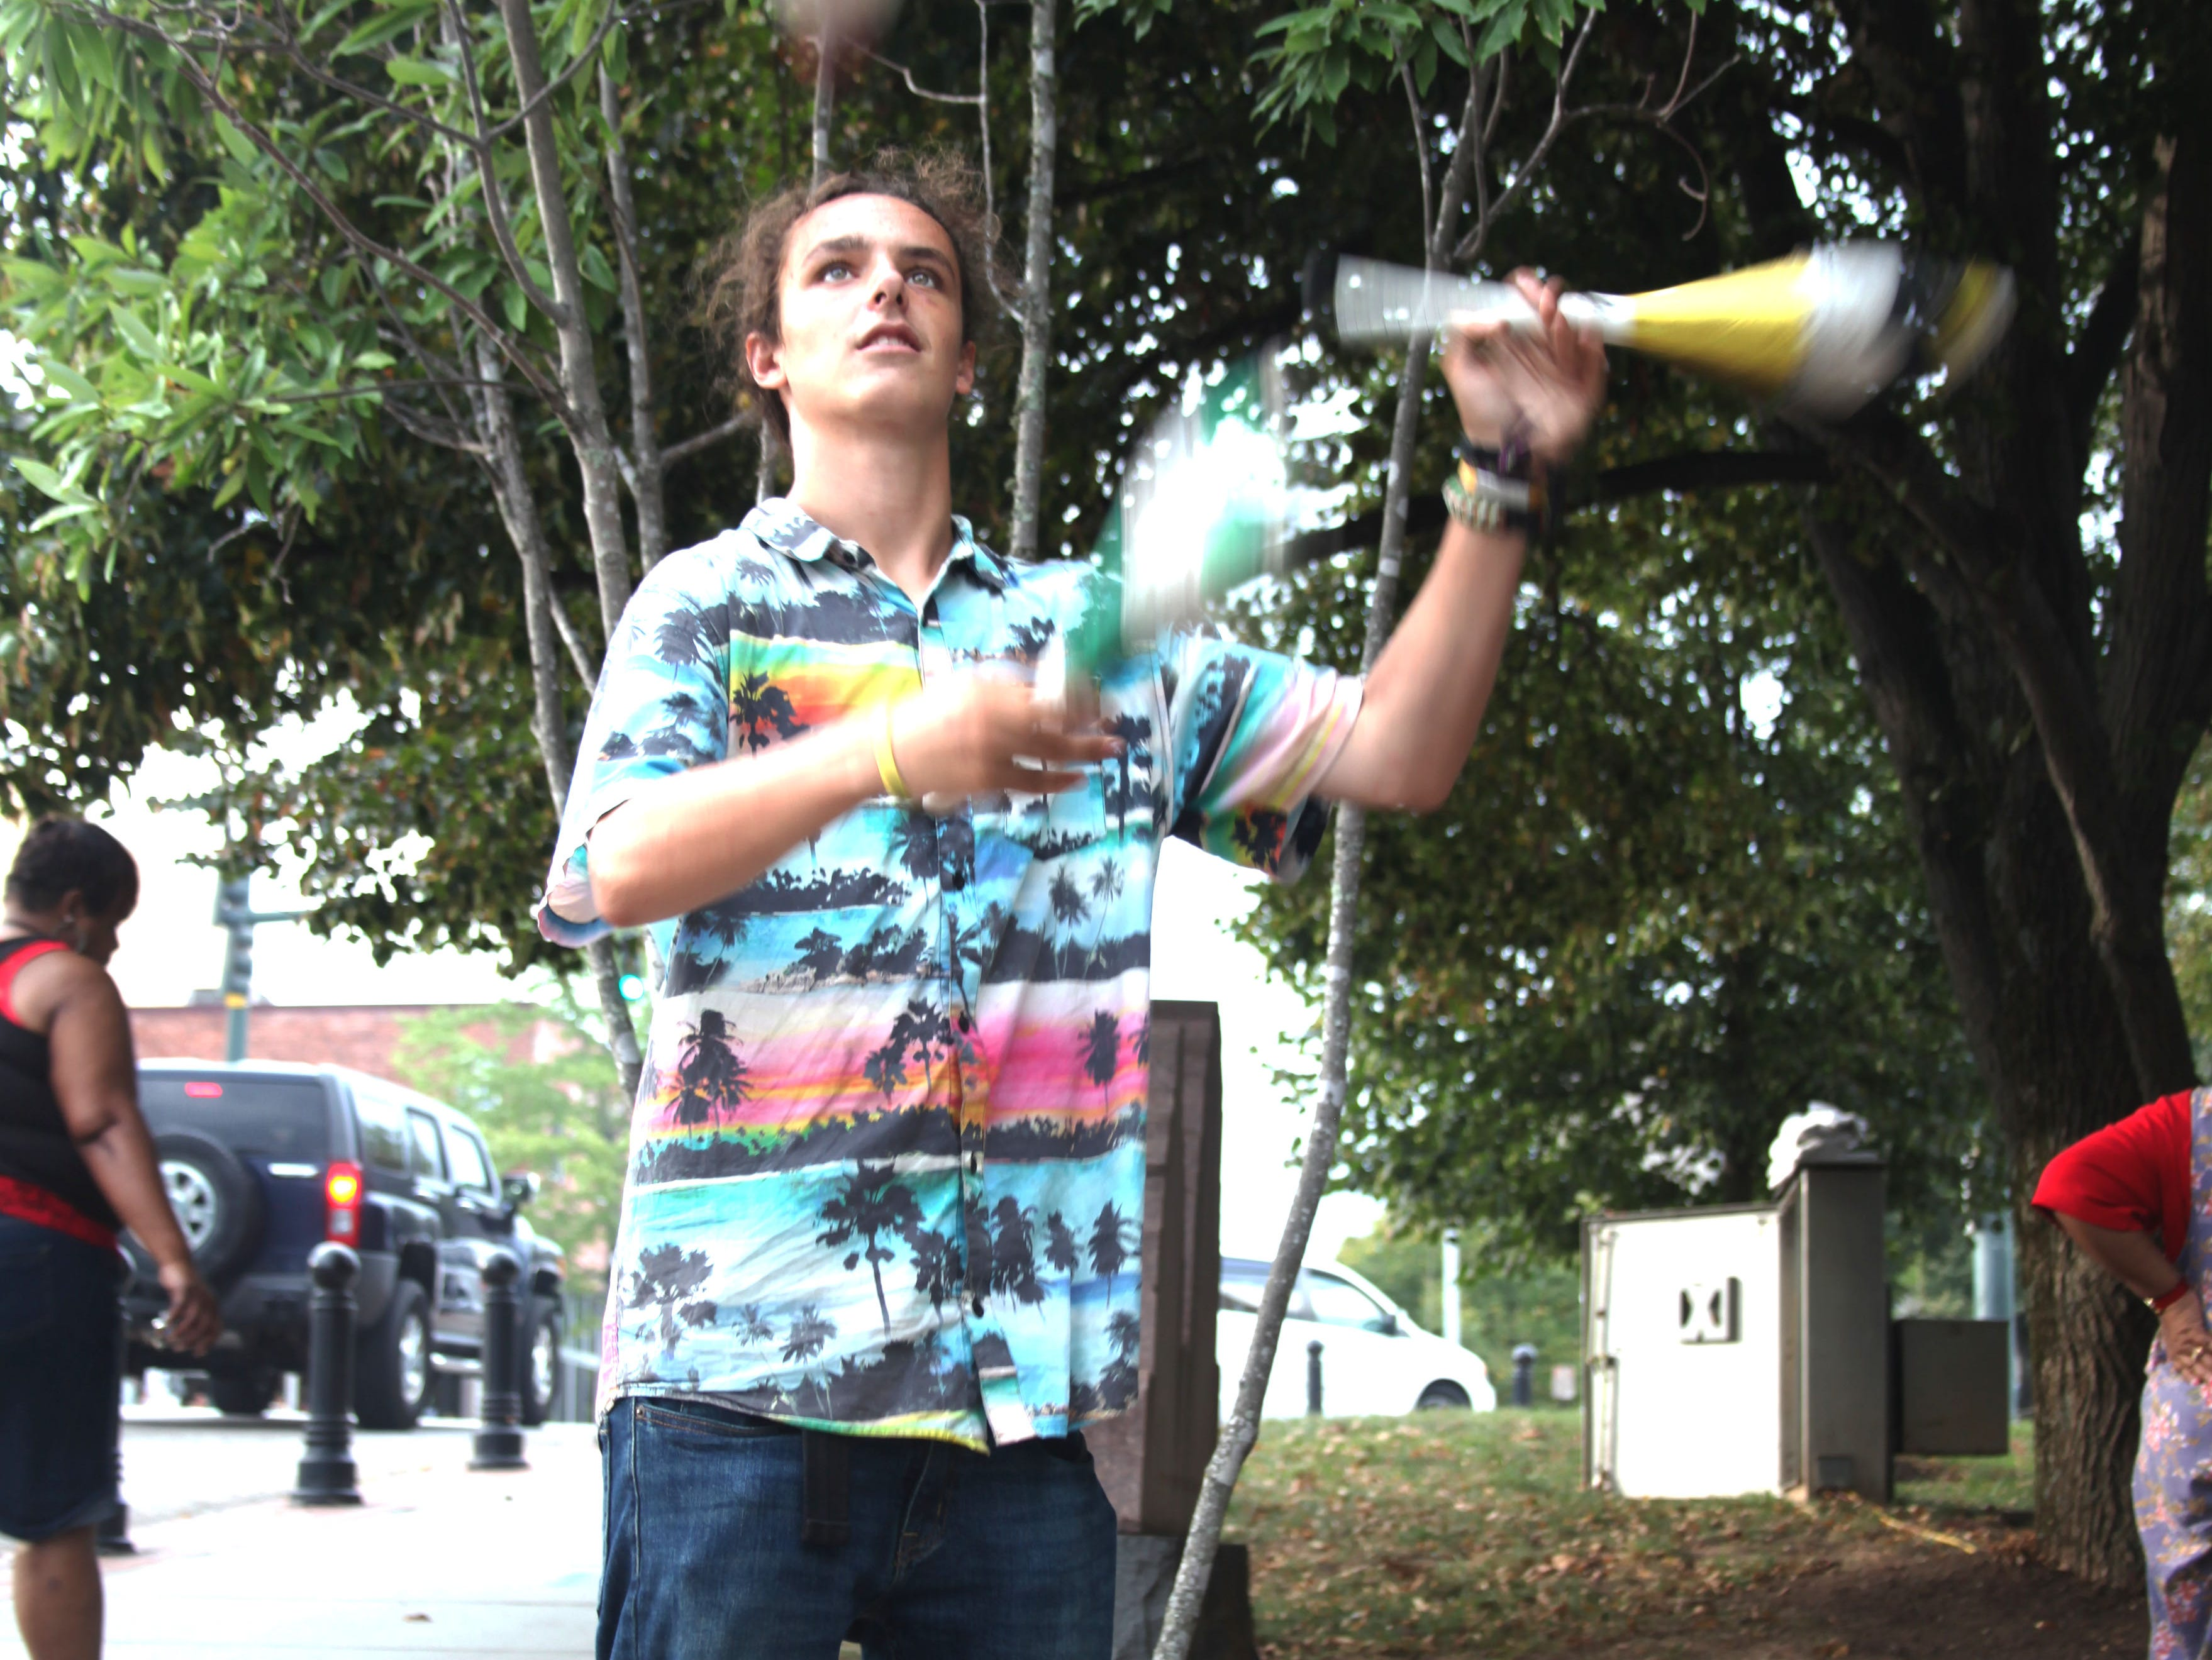 Darron G. juggles at the 2018 Goombay Festival at the Roger McGuire Green in Pack Square Park on Sept. 8, 2018.